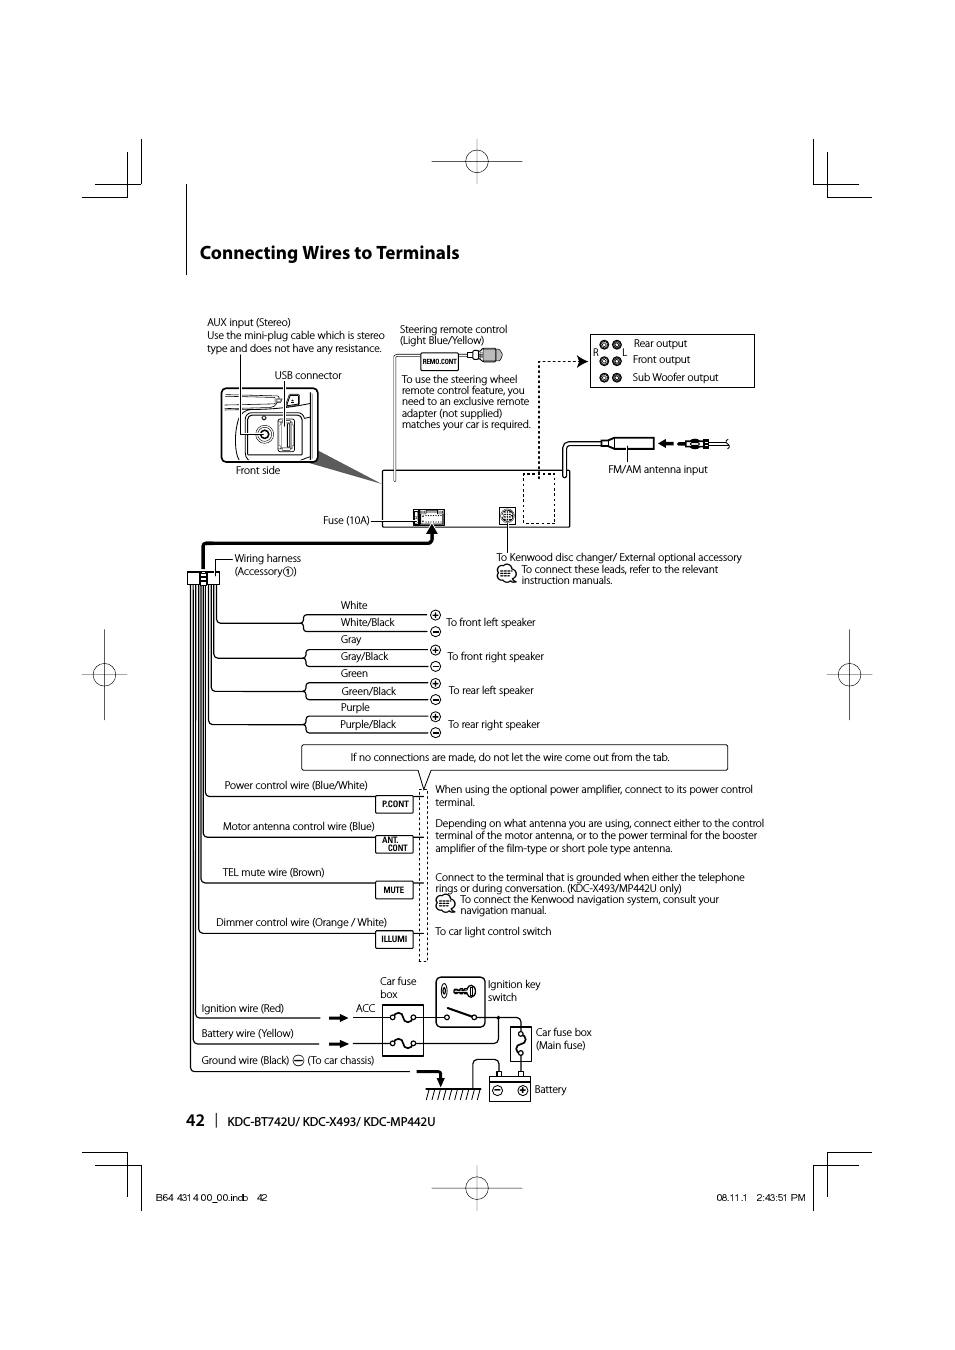 Connecting Wires To Terminals | Kenwood Kdc-Bt742U User Manual - Kenwood Kdc Wiring Diagram